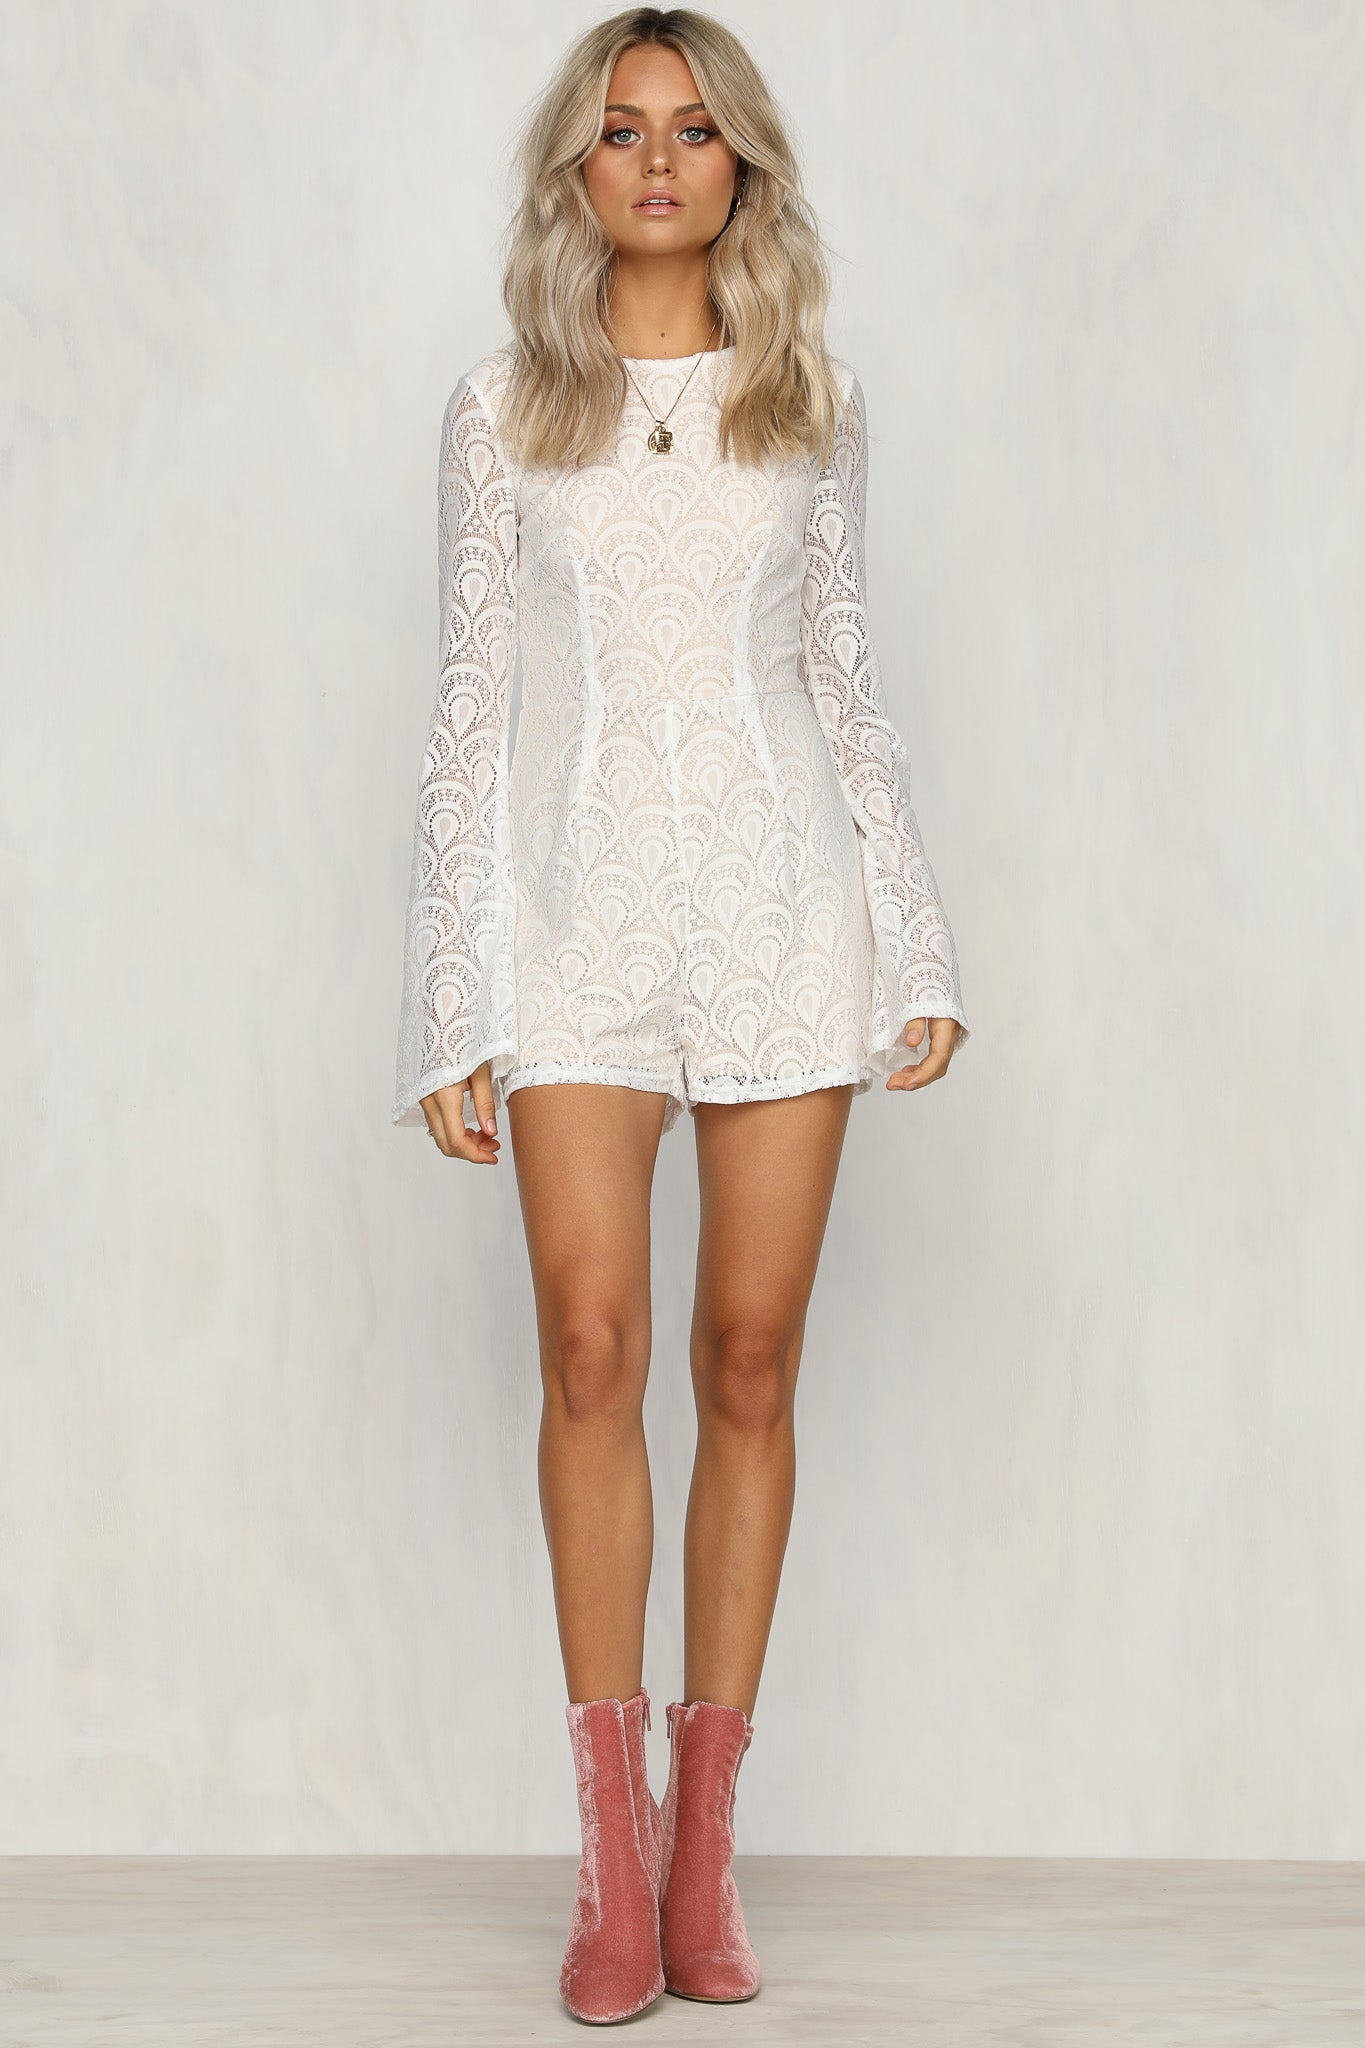 Tranquillity Playsuit